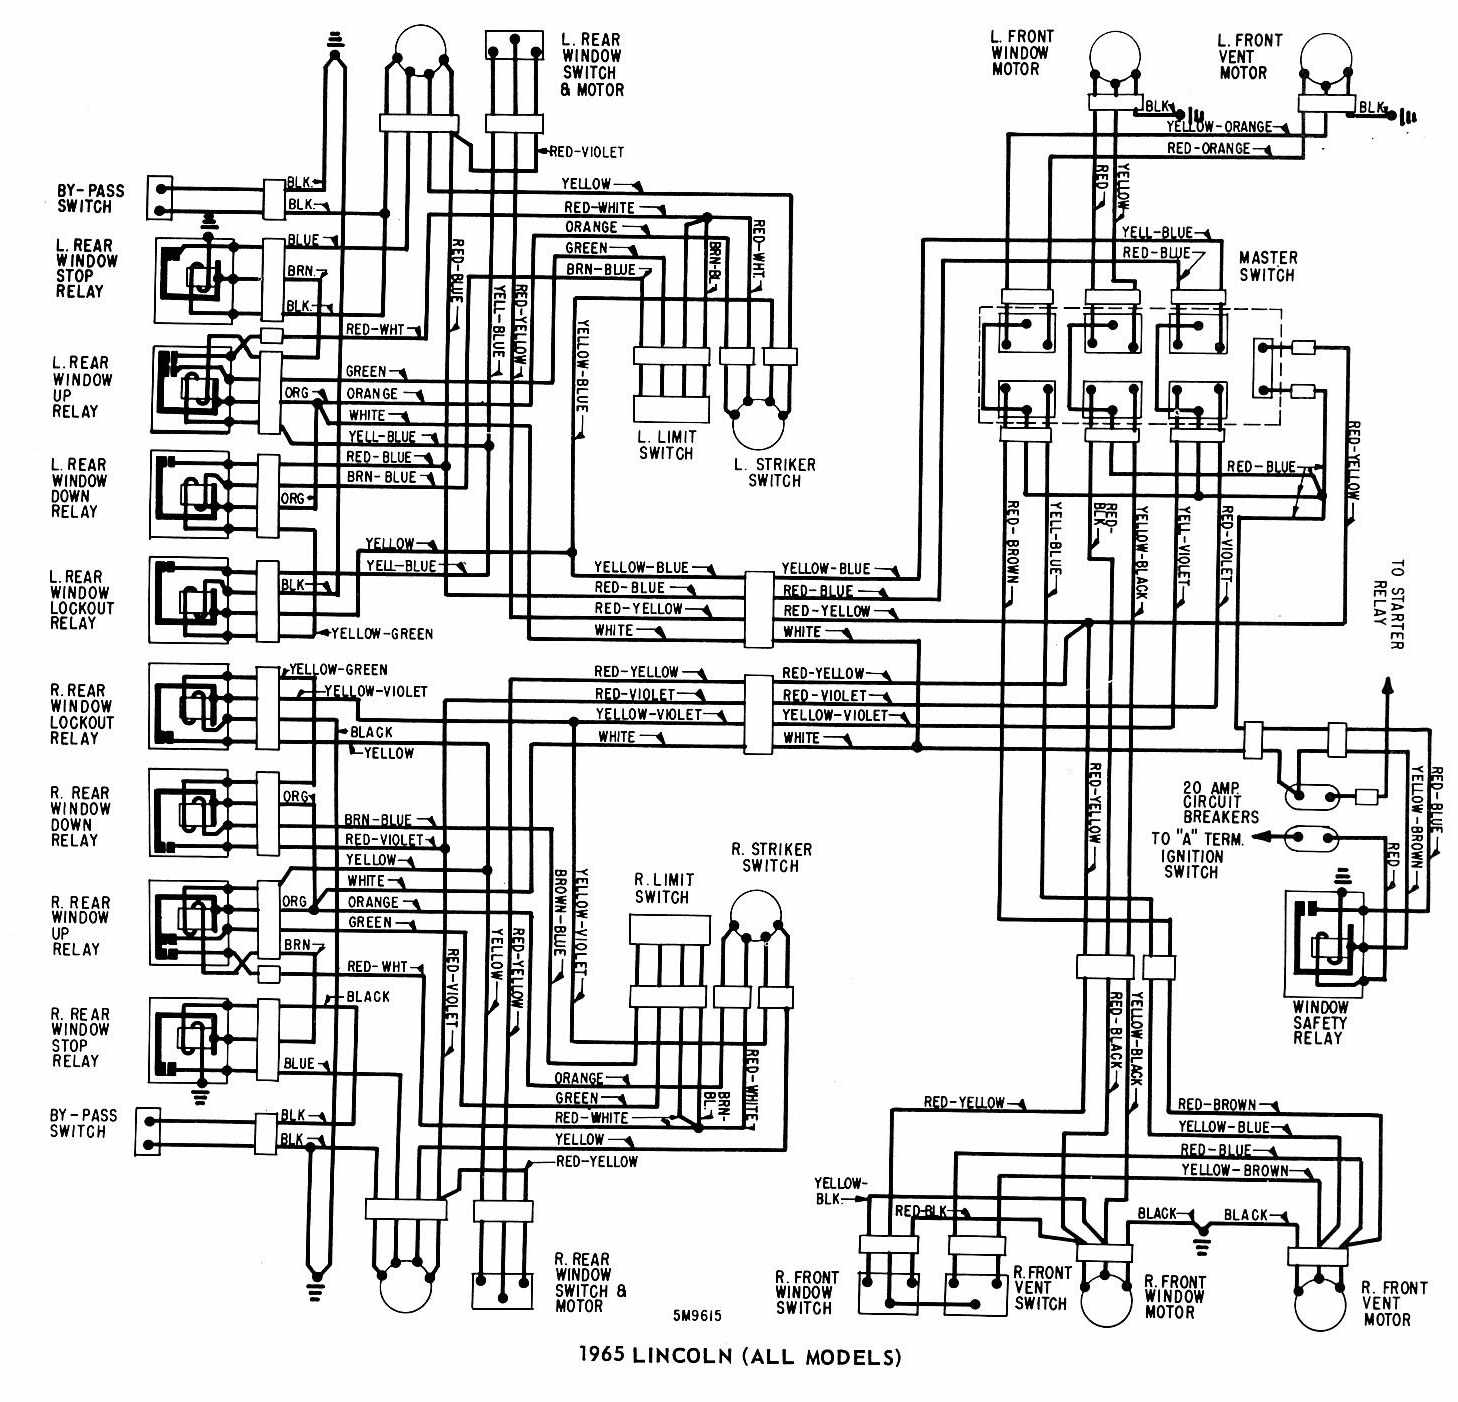 small resolution of 1962 lincoln wiring diagram free wiring diagram for you u2022 eurodrive wiring diagrams 1960 lincoln wiring diagram